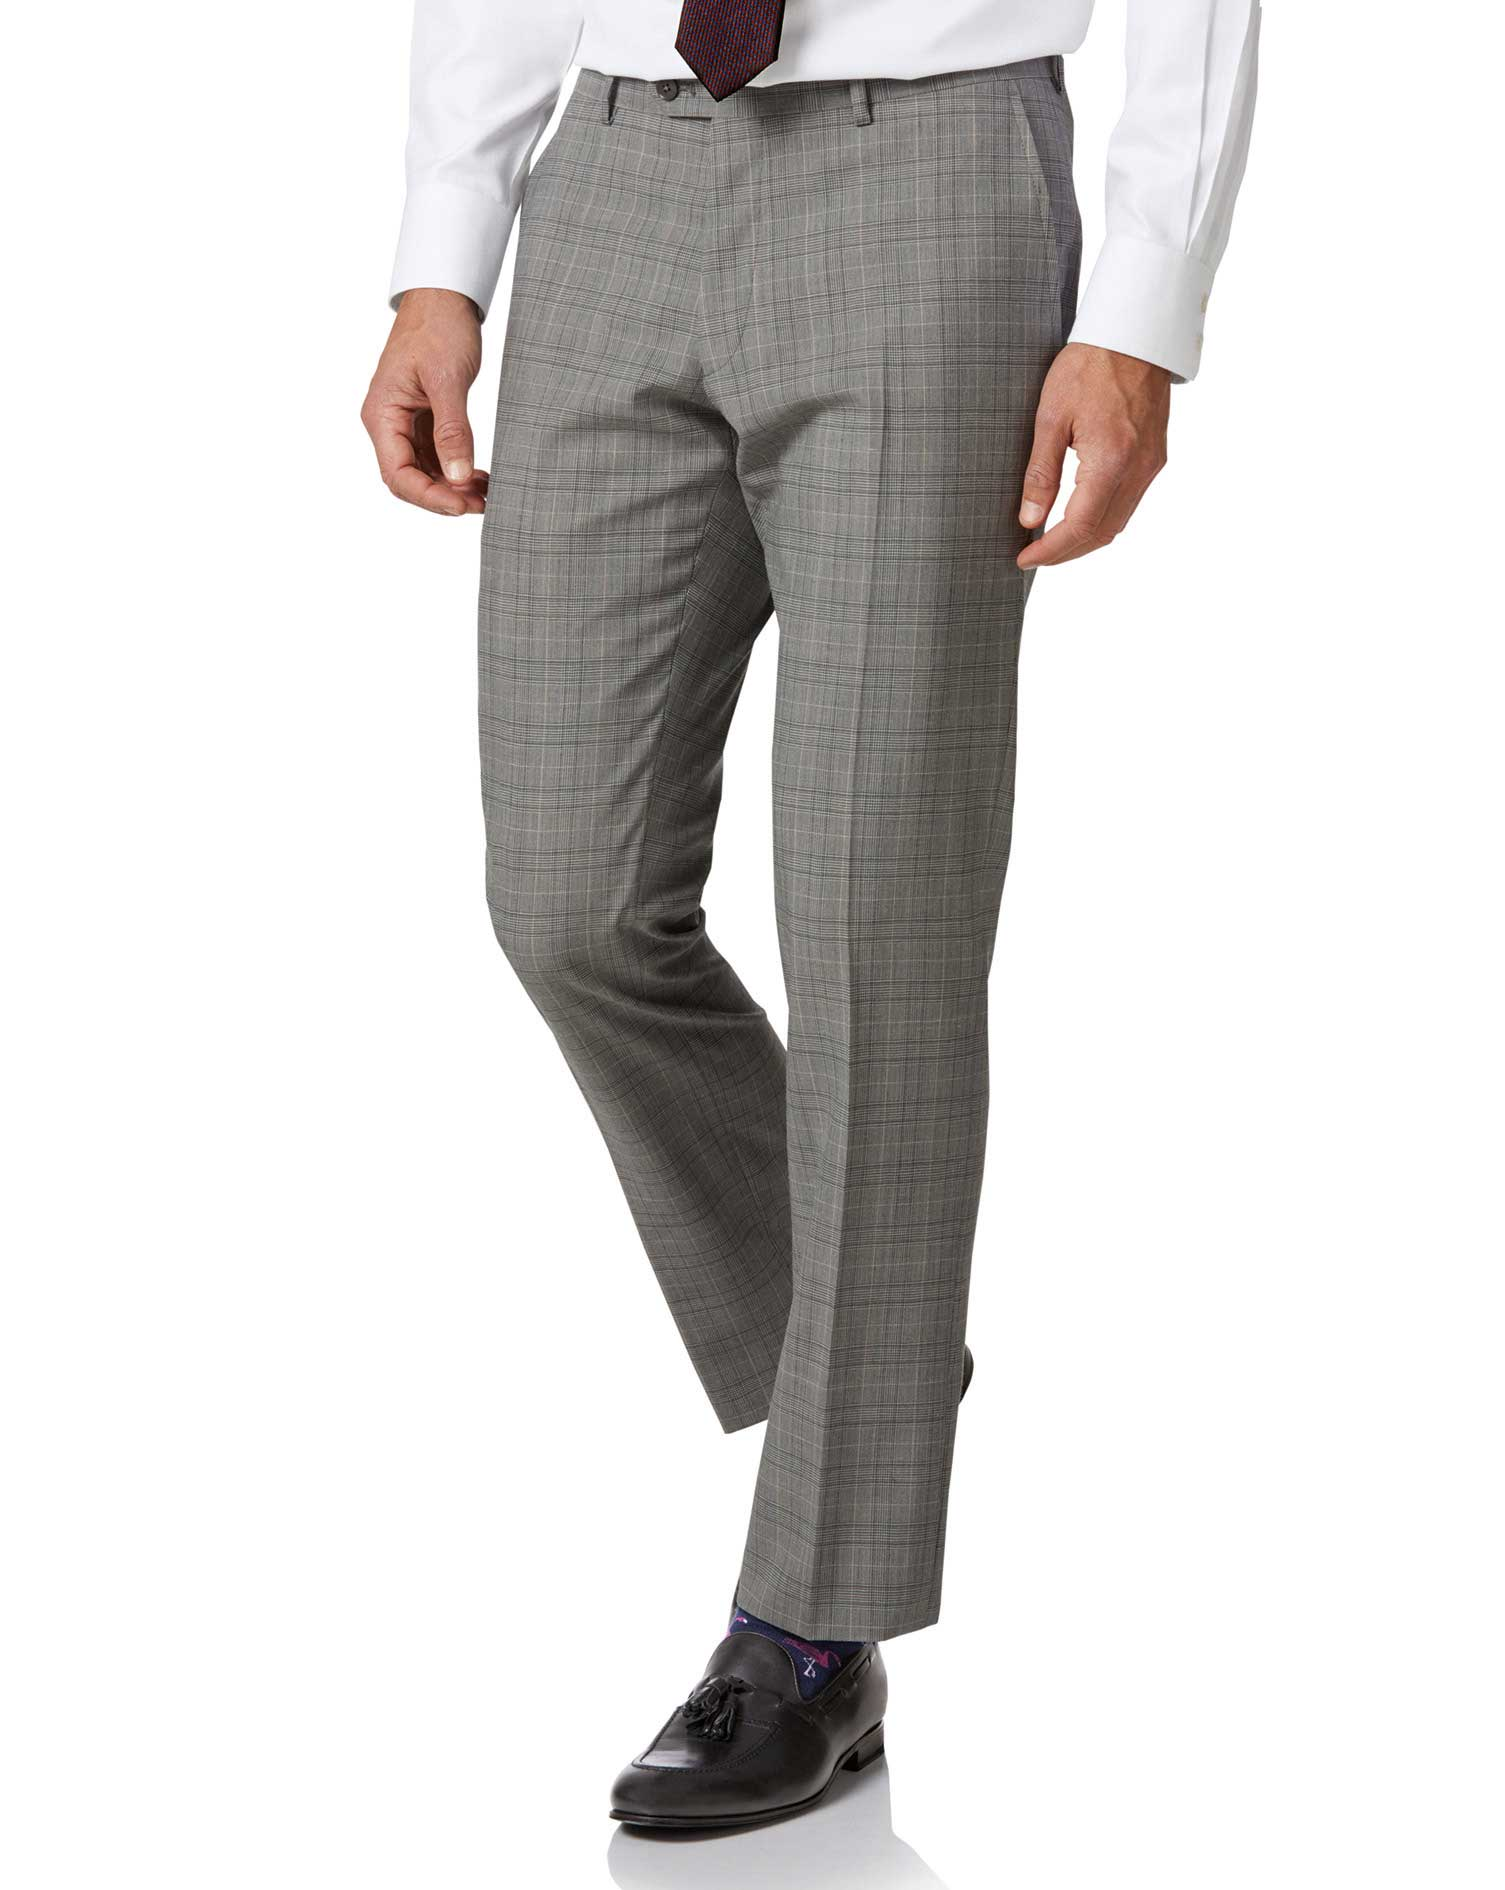 Grey Price Of Wales Slim Fit Panama Business Suit Trouser Size W34 L34 by Charles Tyrwhitt